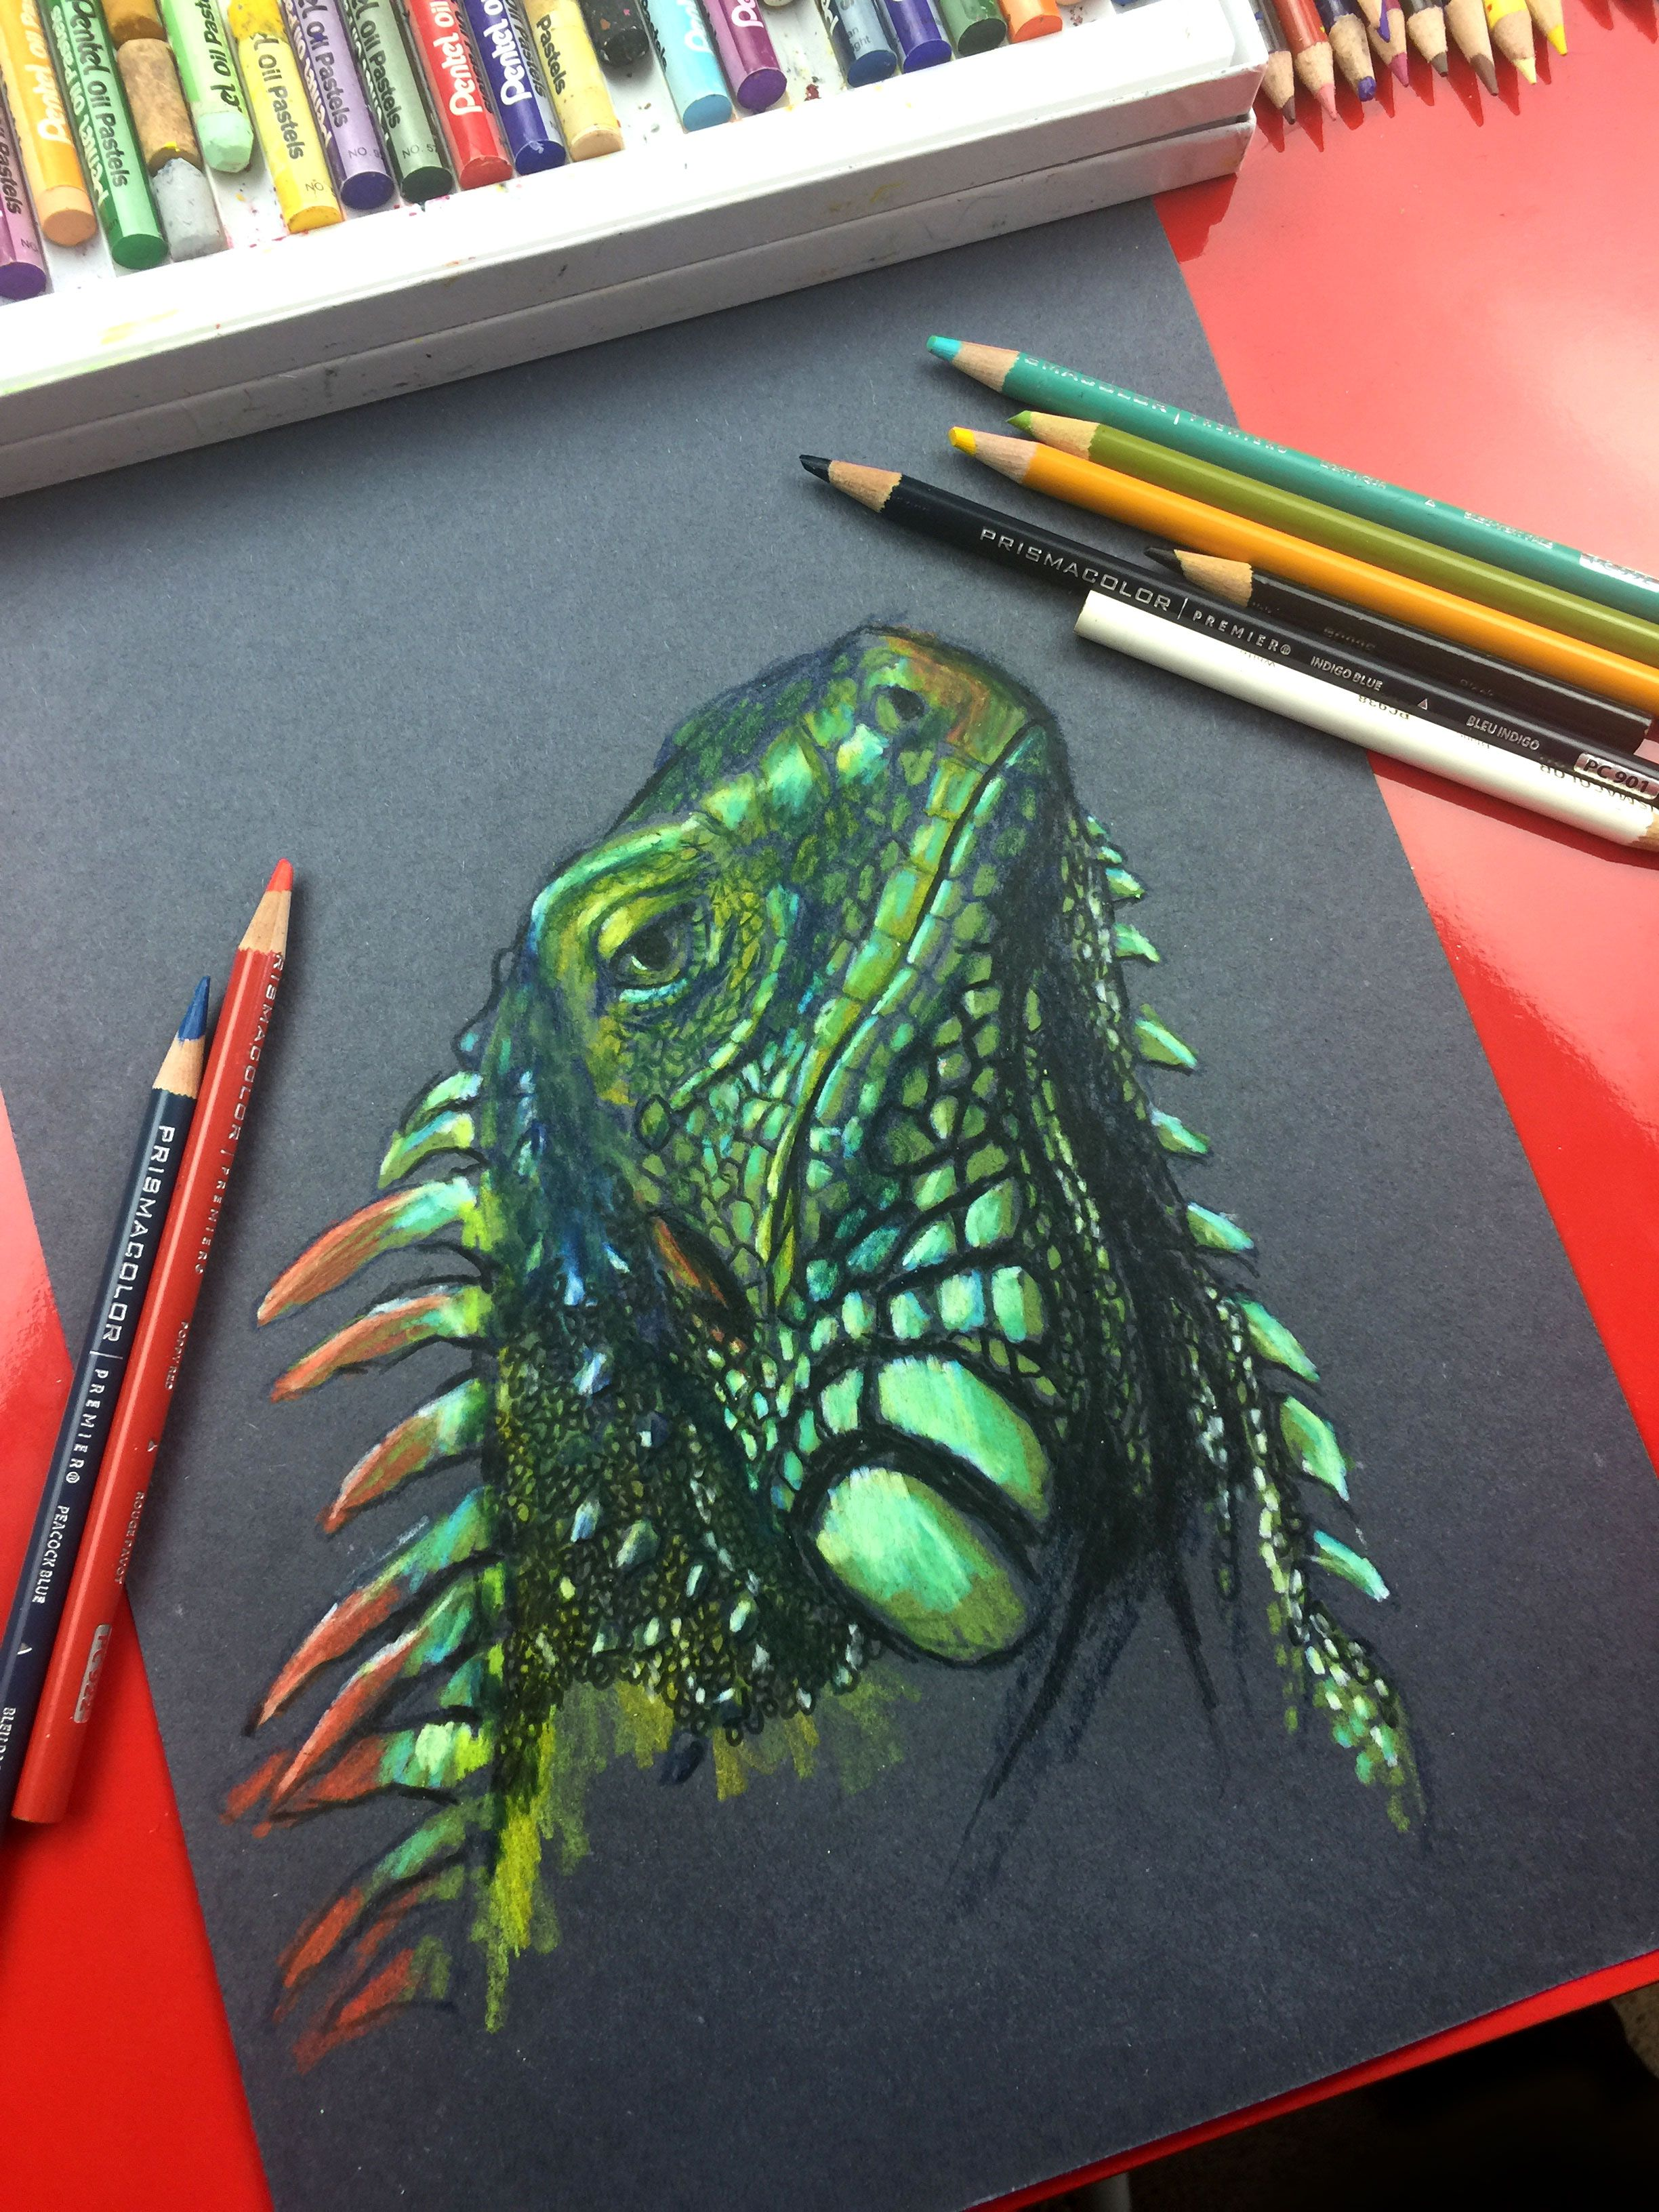 Iguana Drawing - Colored Pencils On Black Paper - Art For Kids Hub ...